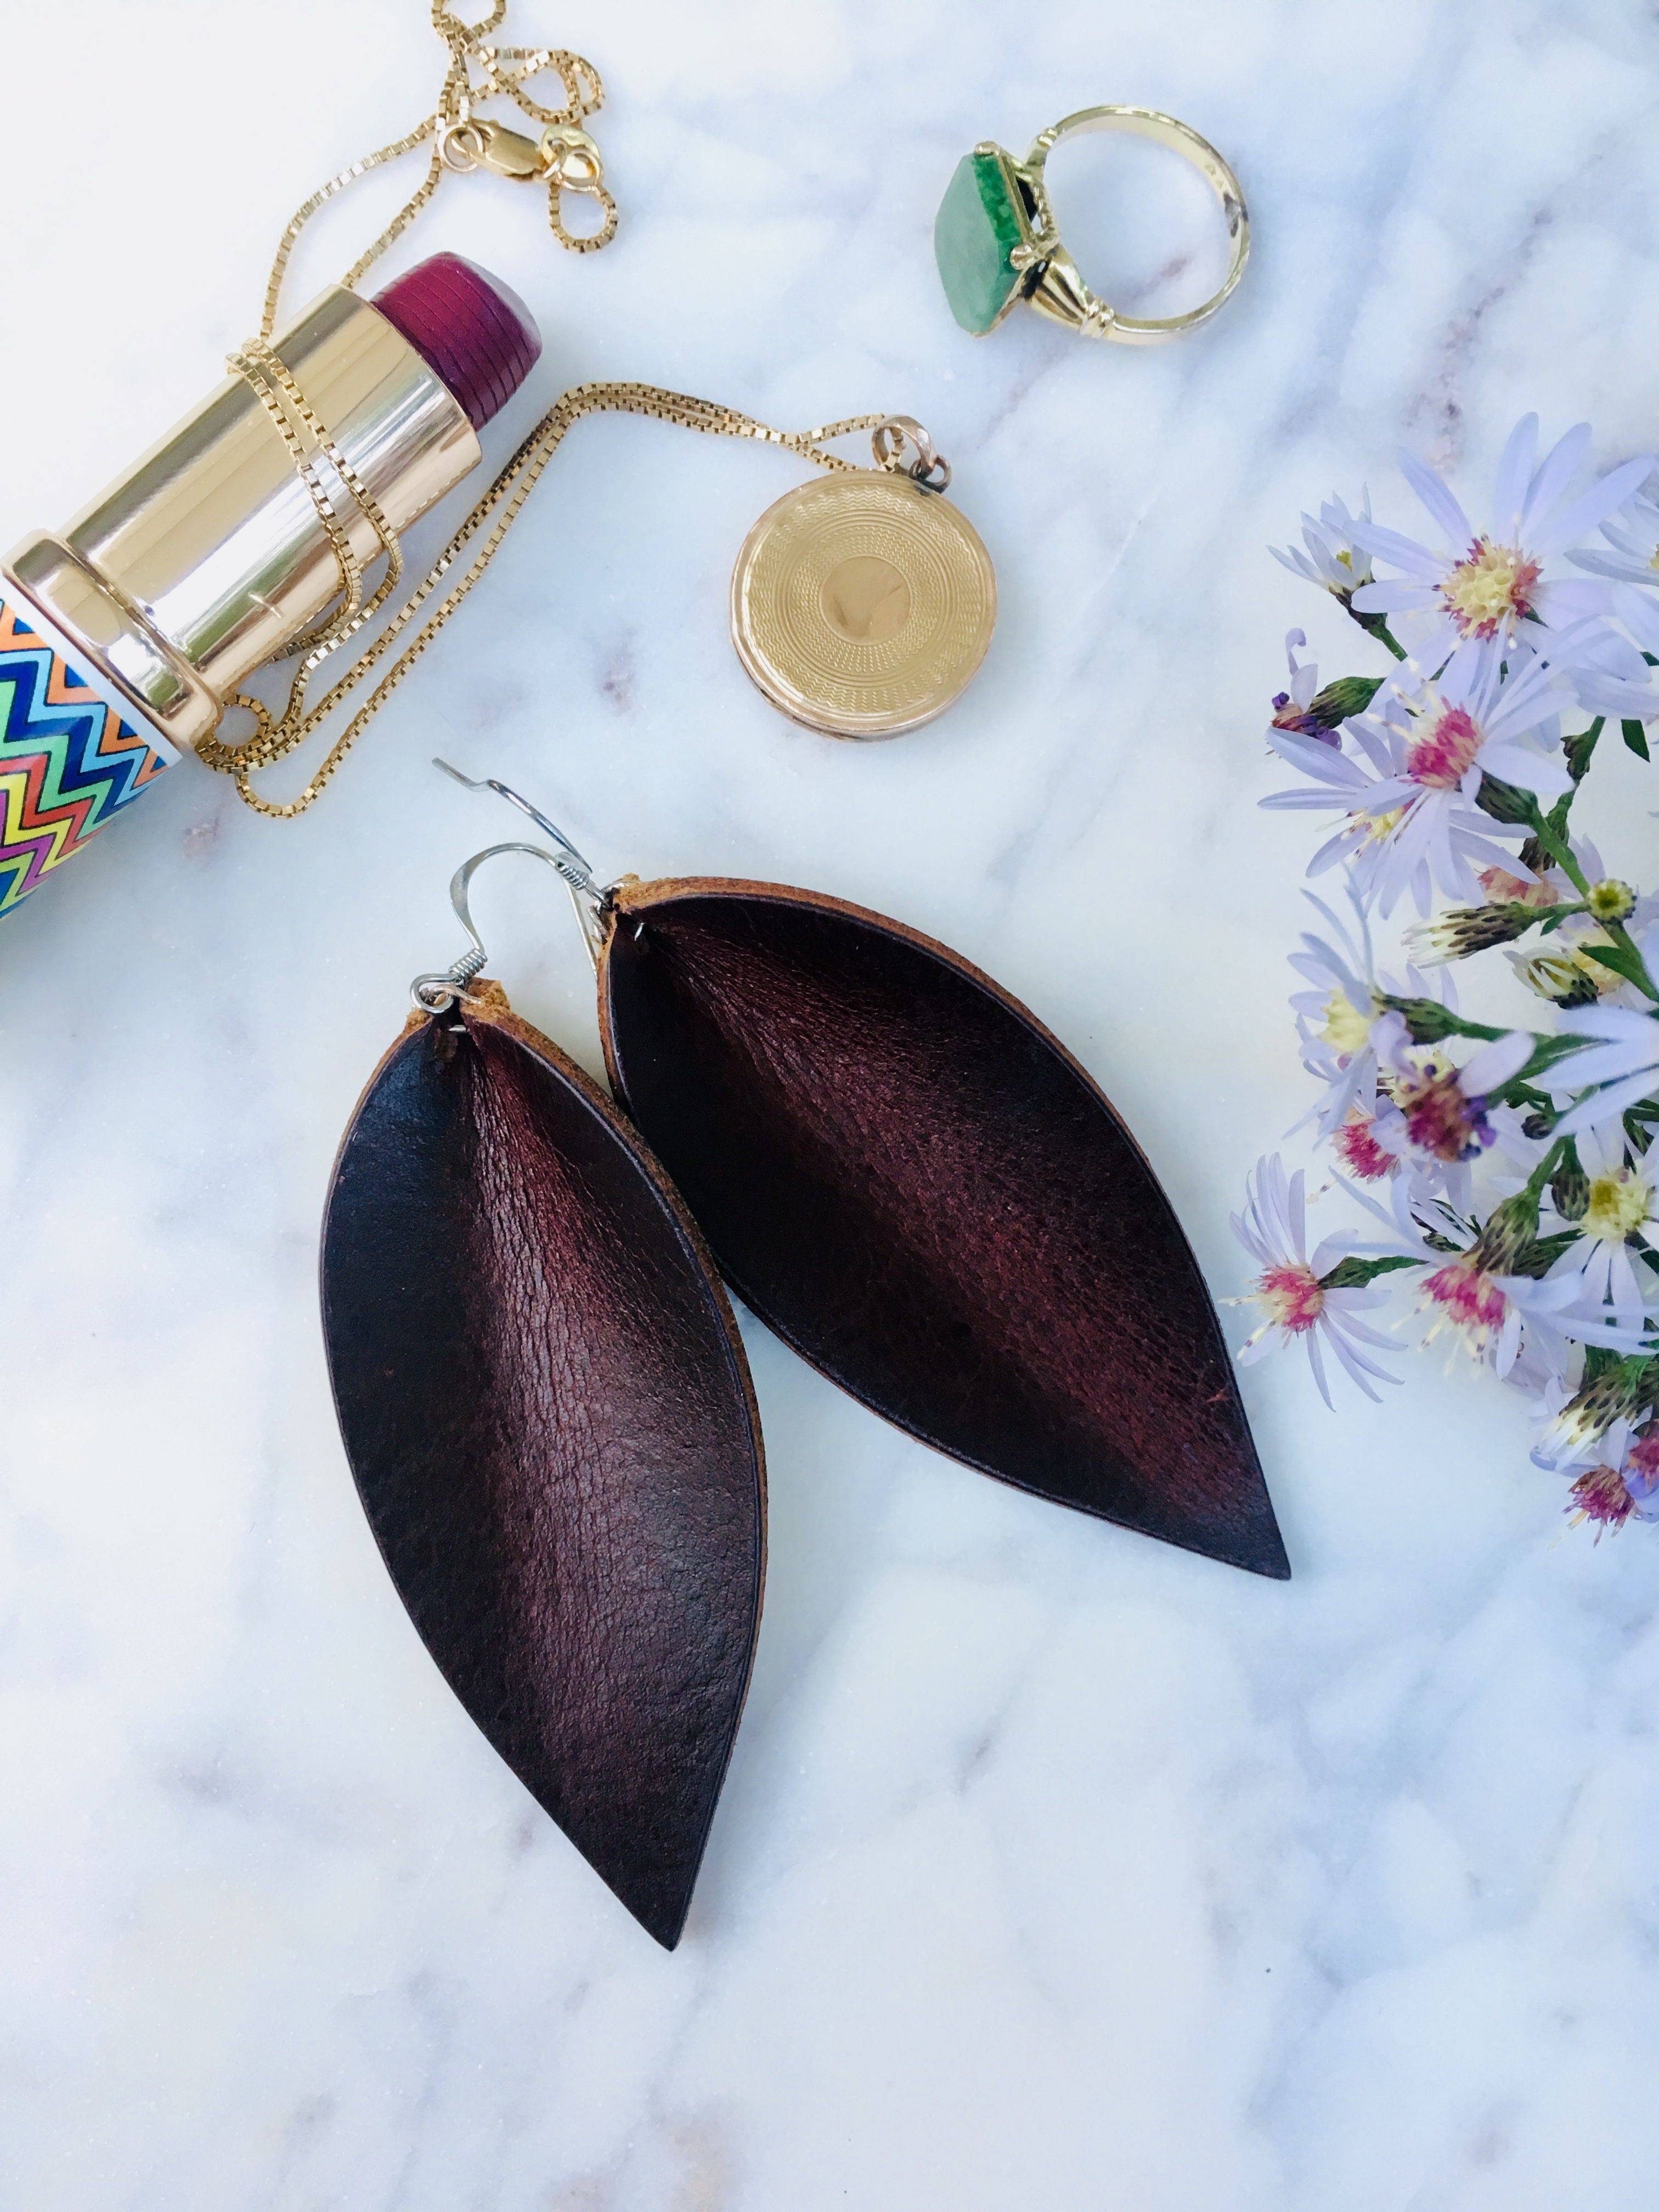 Leather Leaf Earrings Red Wine Leather Leaf Earrings Leather Leaf Earrings Pinched Leaf Earrings Burgundy Leather Earring Leaf Earrings Leather Earrings Leather Leaf